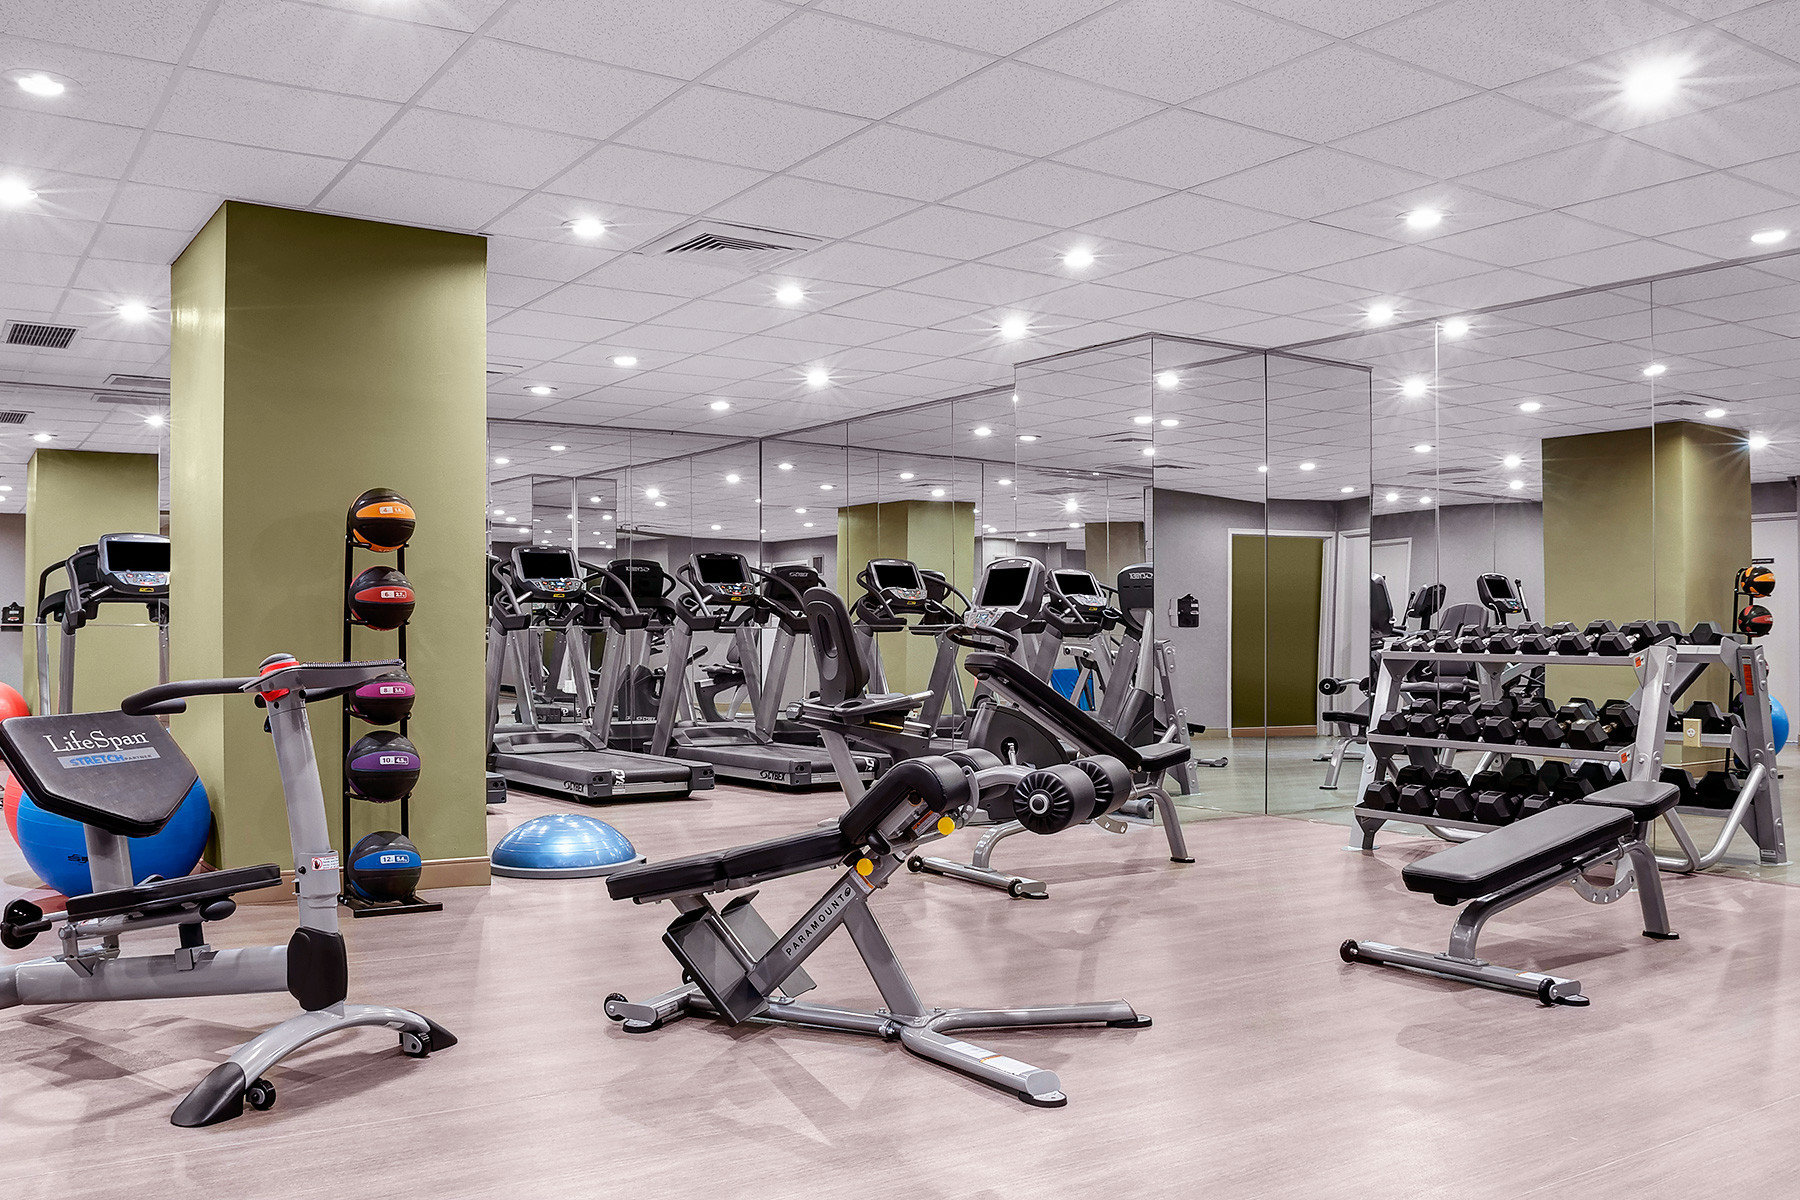 City Classic Fitness Parks Wellness structure gym sport venue physical fitness